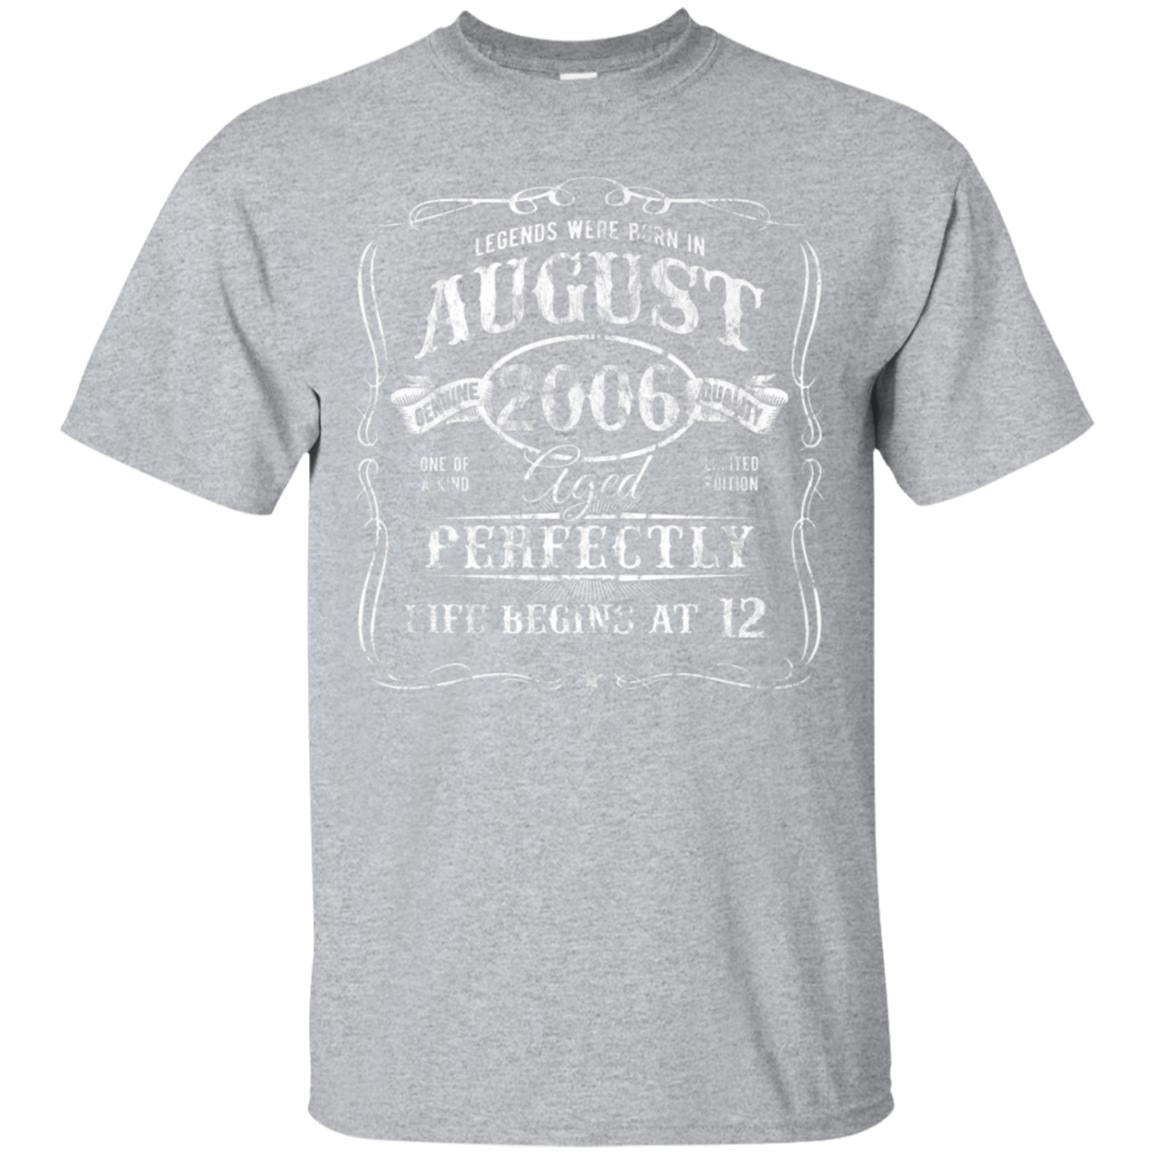 Born In August 2006 T-Shirt 12th Birthday Life Begins at 12 99promocode